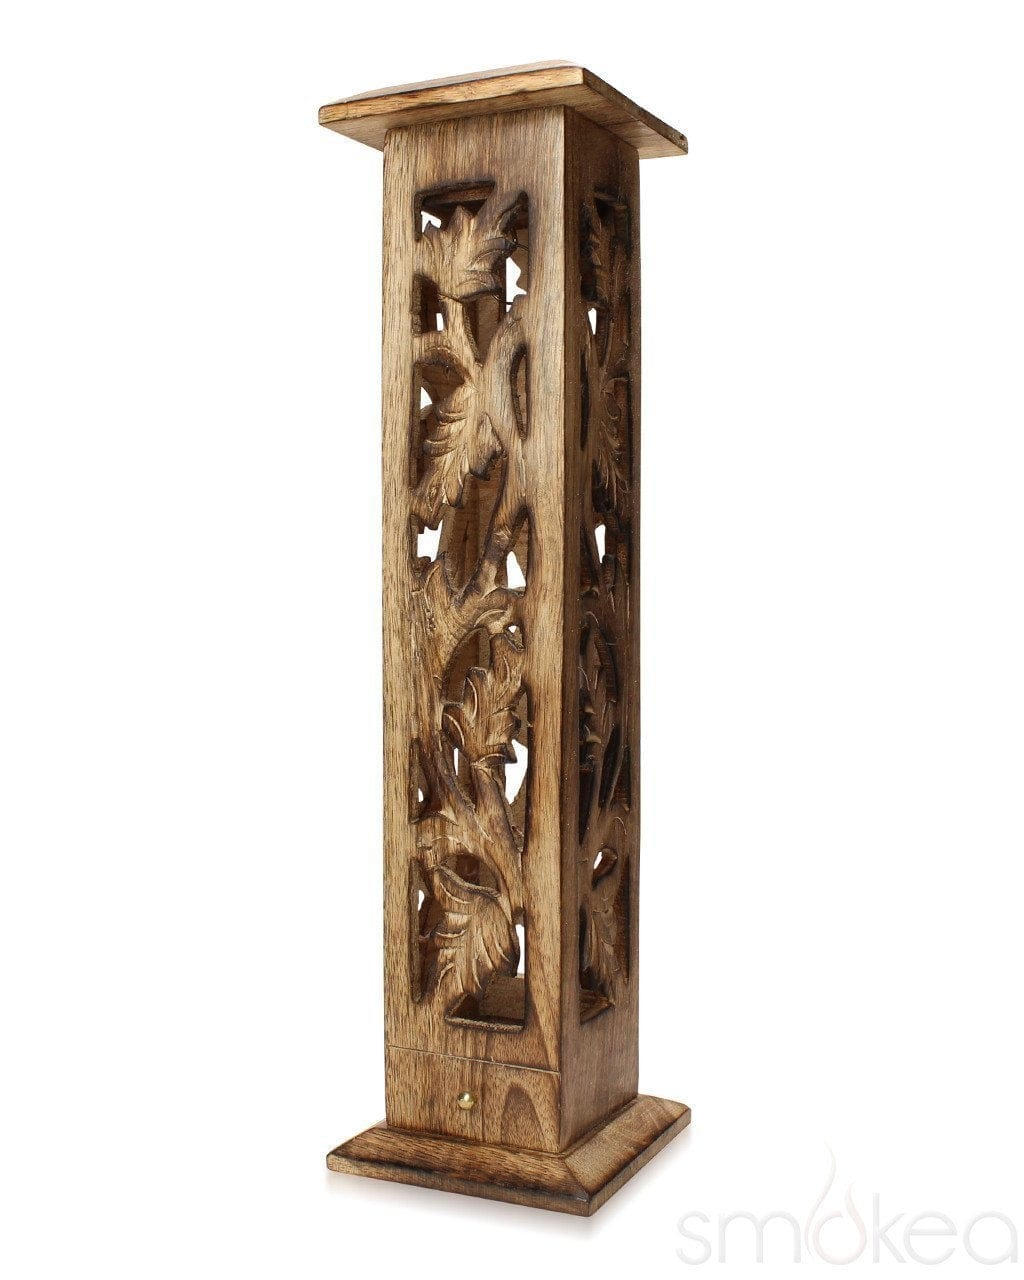 "SMOKEA 12"" Carved Wood Incense Burner Tower - SMOKEA®"